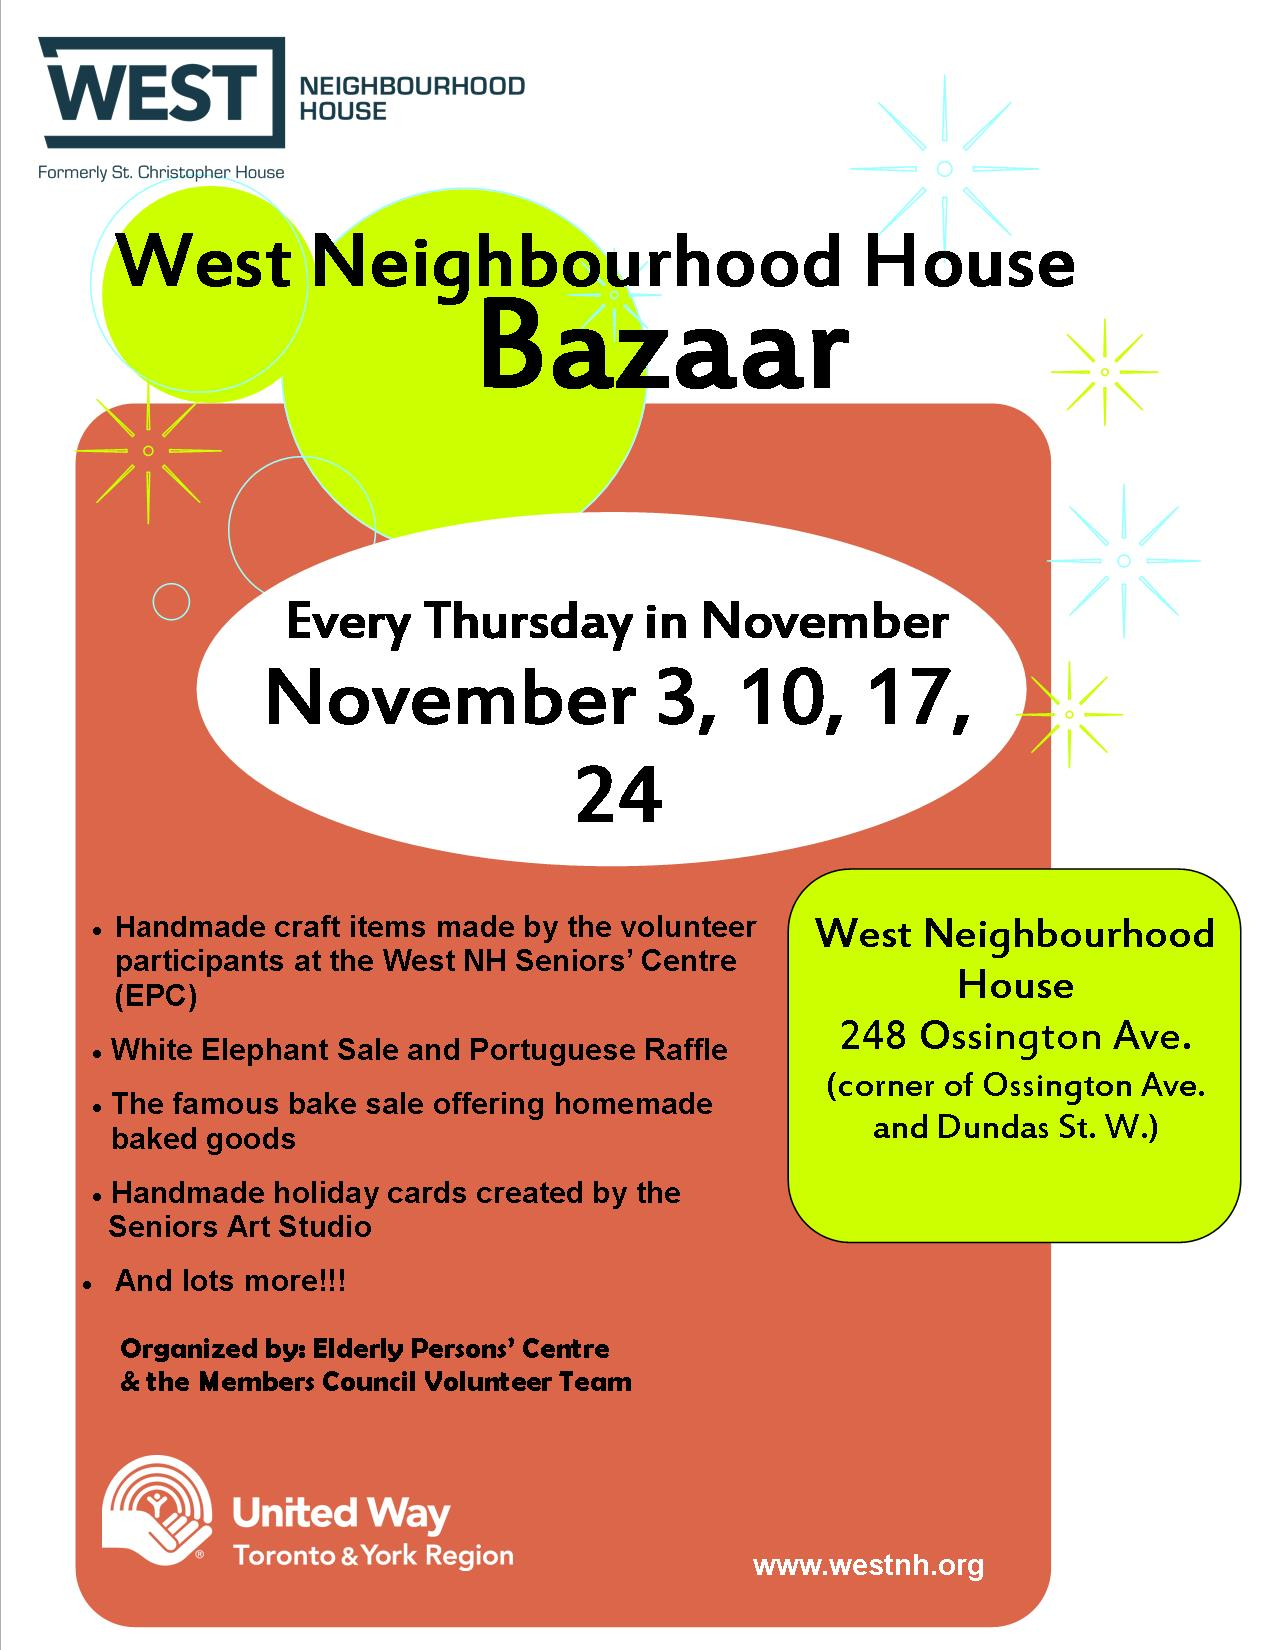 Seniors Bazaar happening every Thursday in November